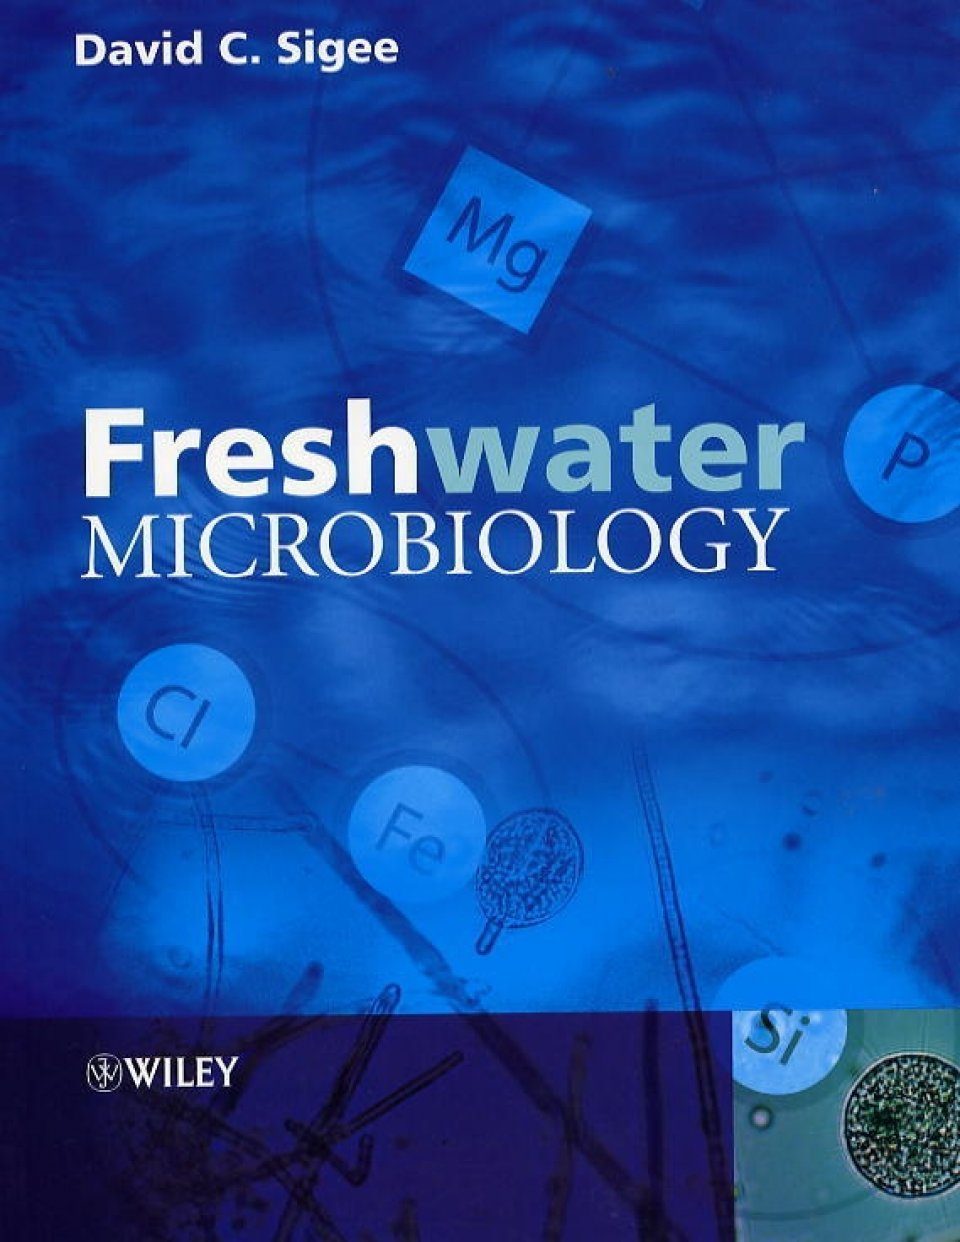 Freshwater Microbiology: Biodiversity and Dynamic Interactions of